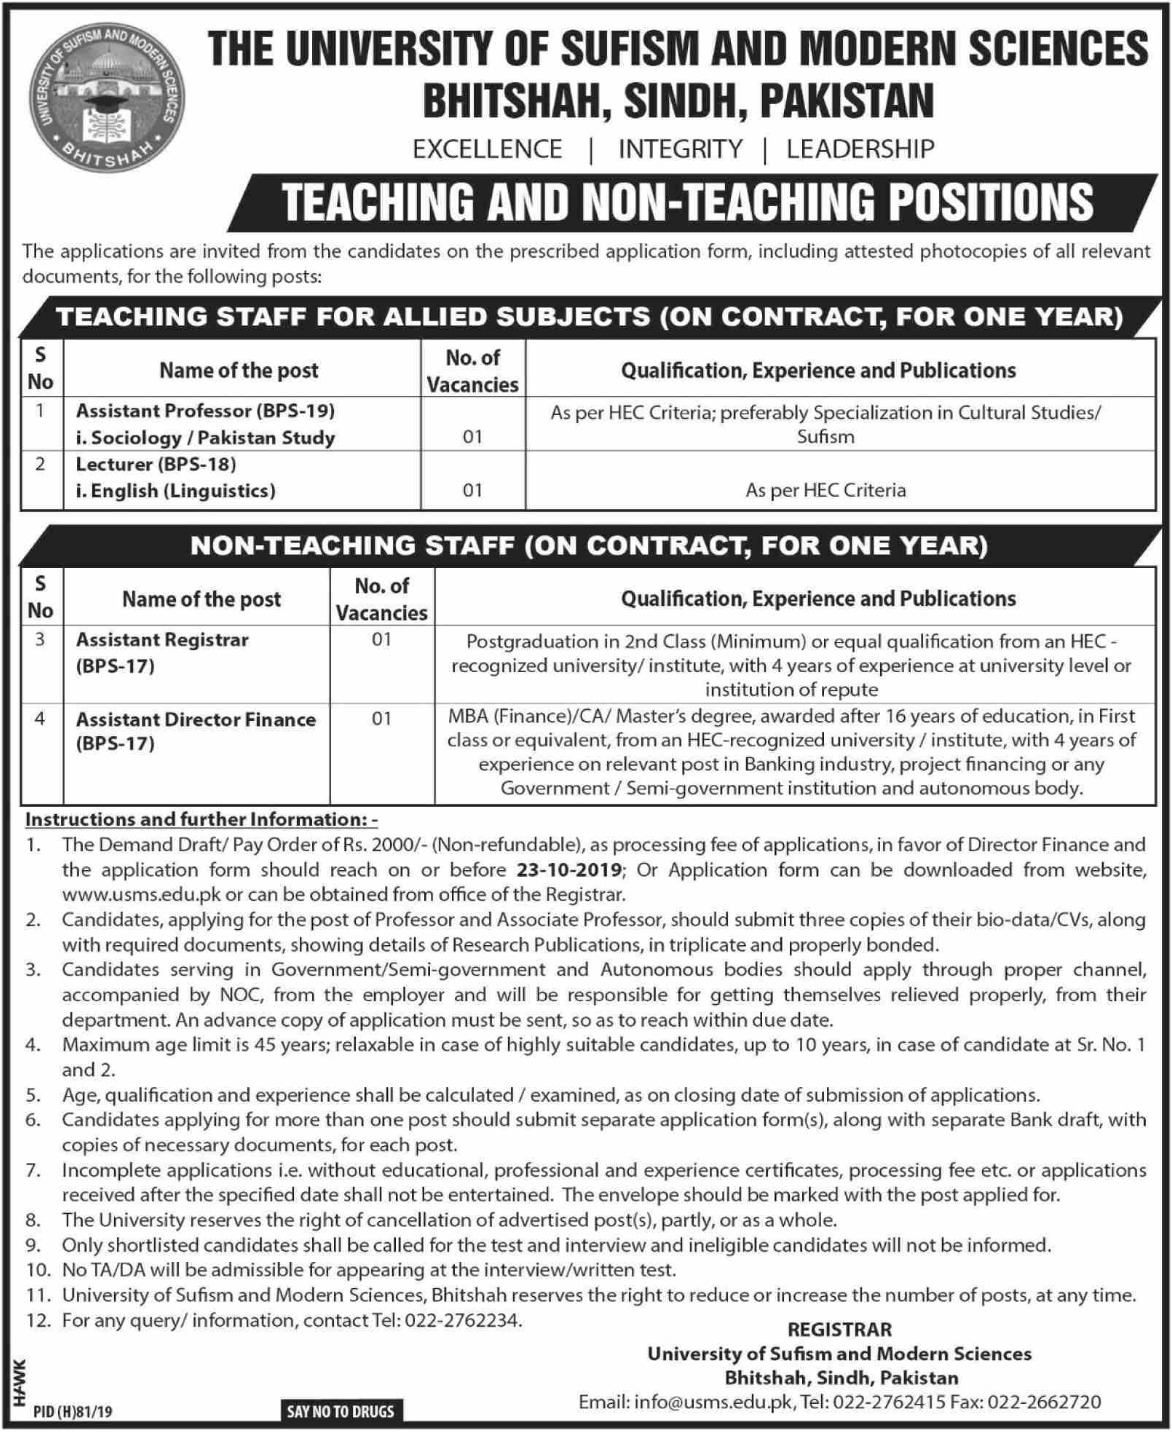 University of Sufism and Modern Sciences USMS Bhitshah Jobs 2019